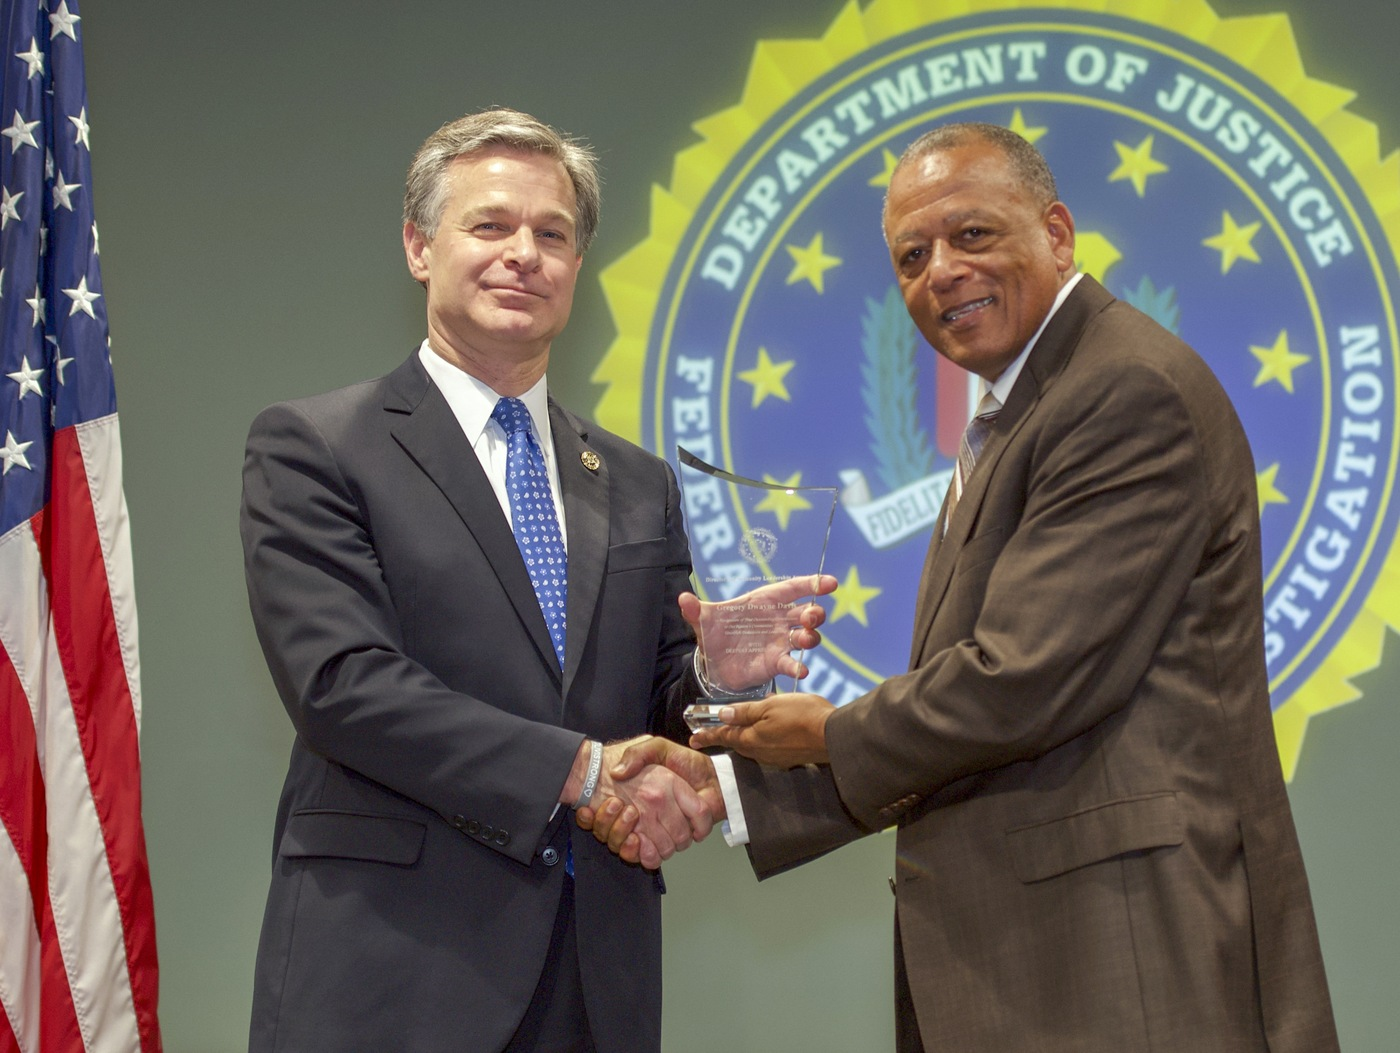 FBI Director Christopher Wray presents El Paso Division recipient Gregory Dwayne Davis with the Director's Community Leadership Award (DCLA) at a ceremony at FBI Headquarters on May 3, 2019.